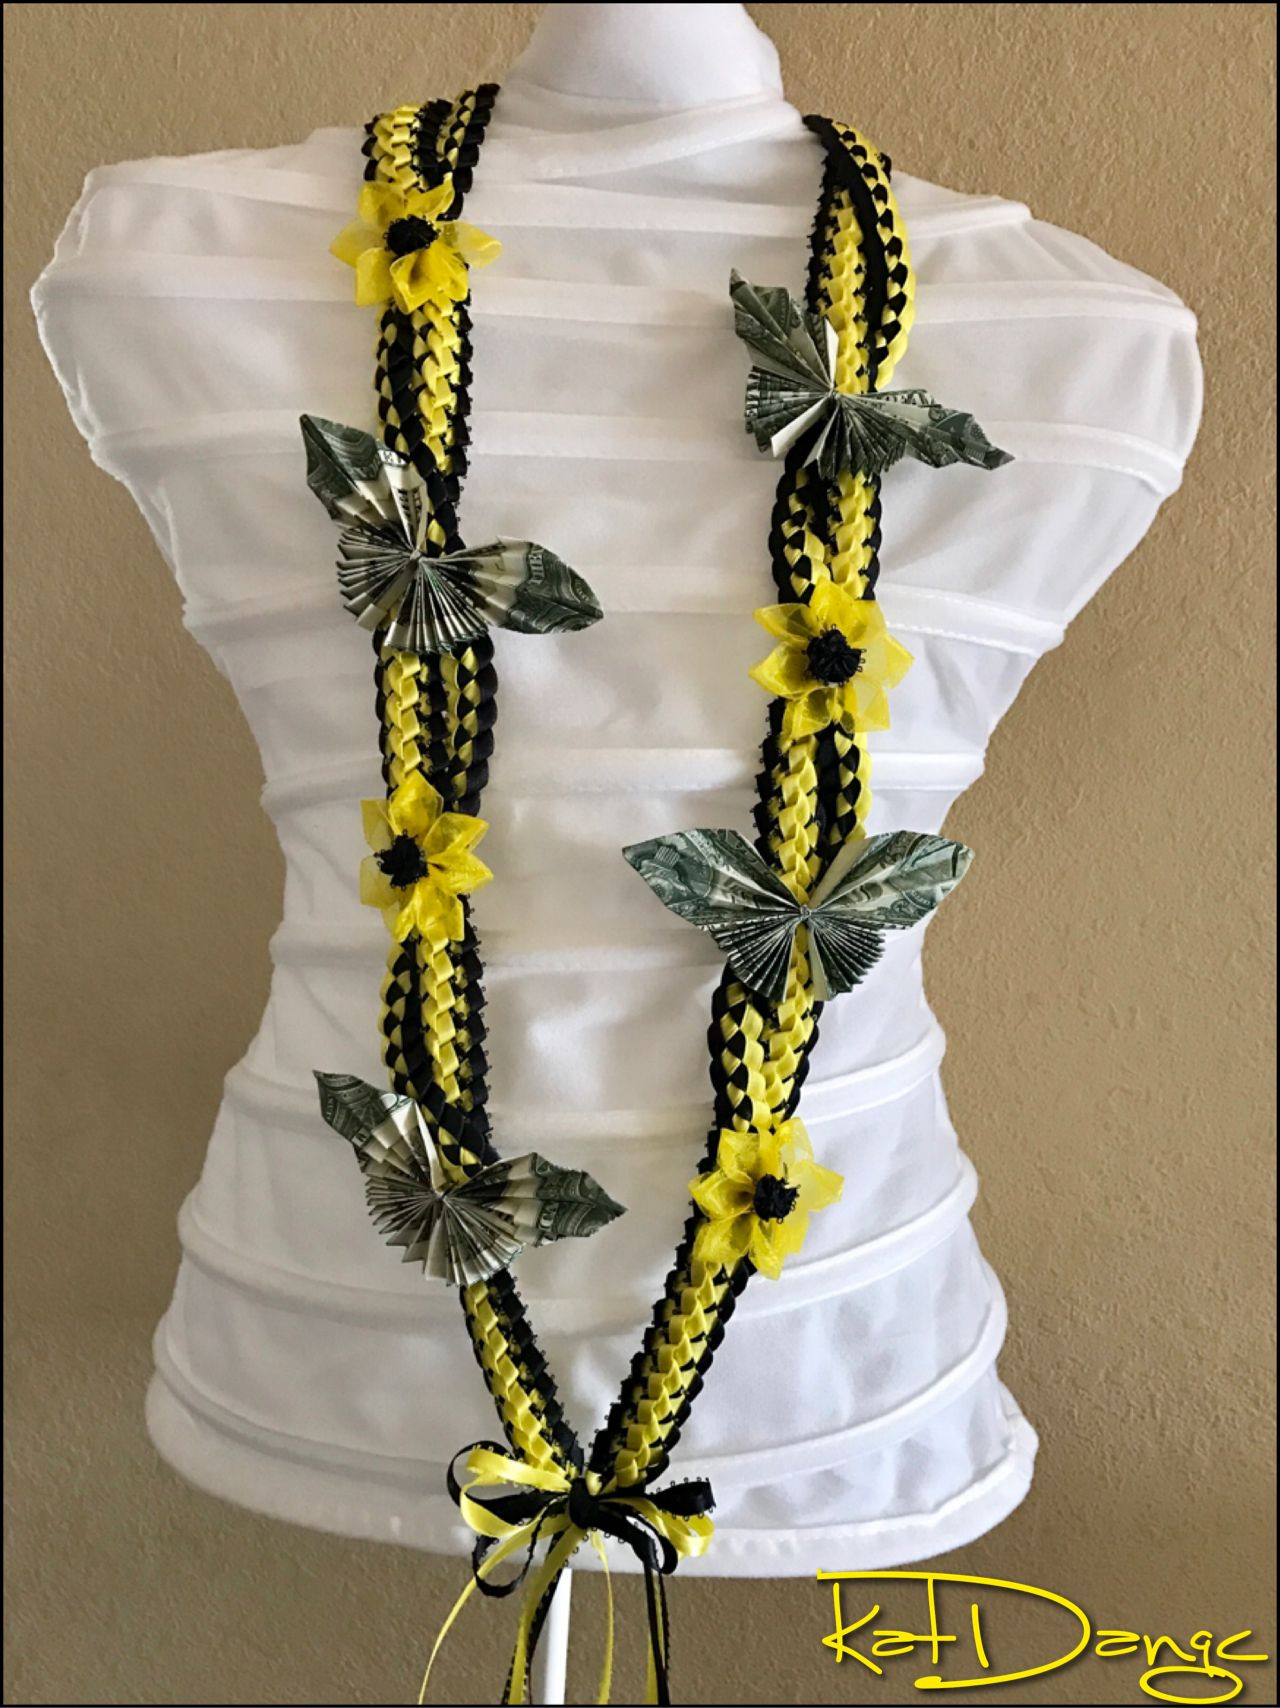 Best ideas about Graduation Leis DIY . Save or Pin Pin by Kat Dangc on graduation leis Now.